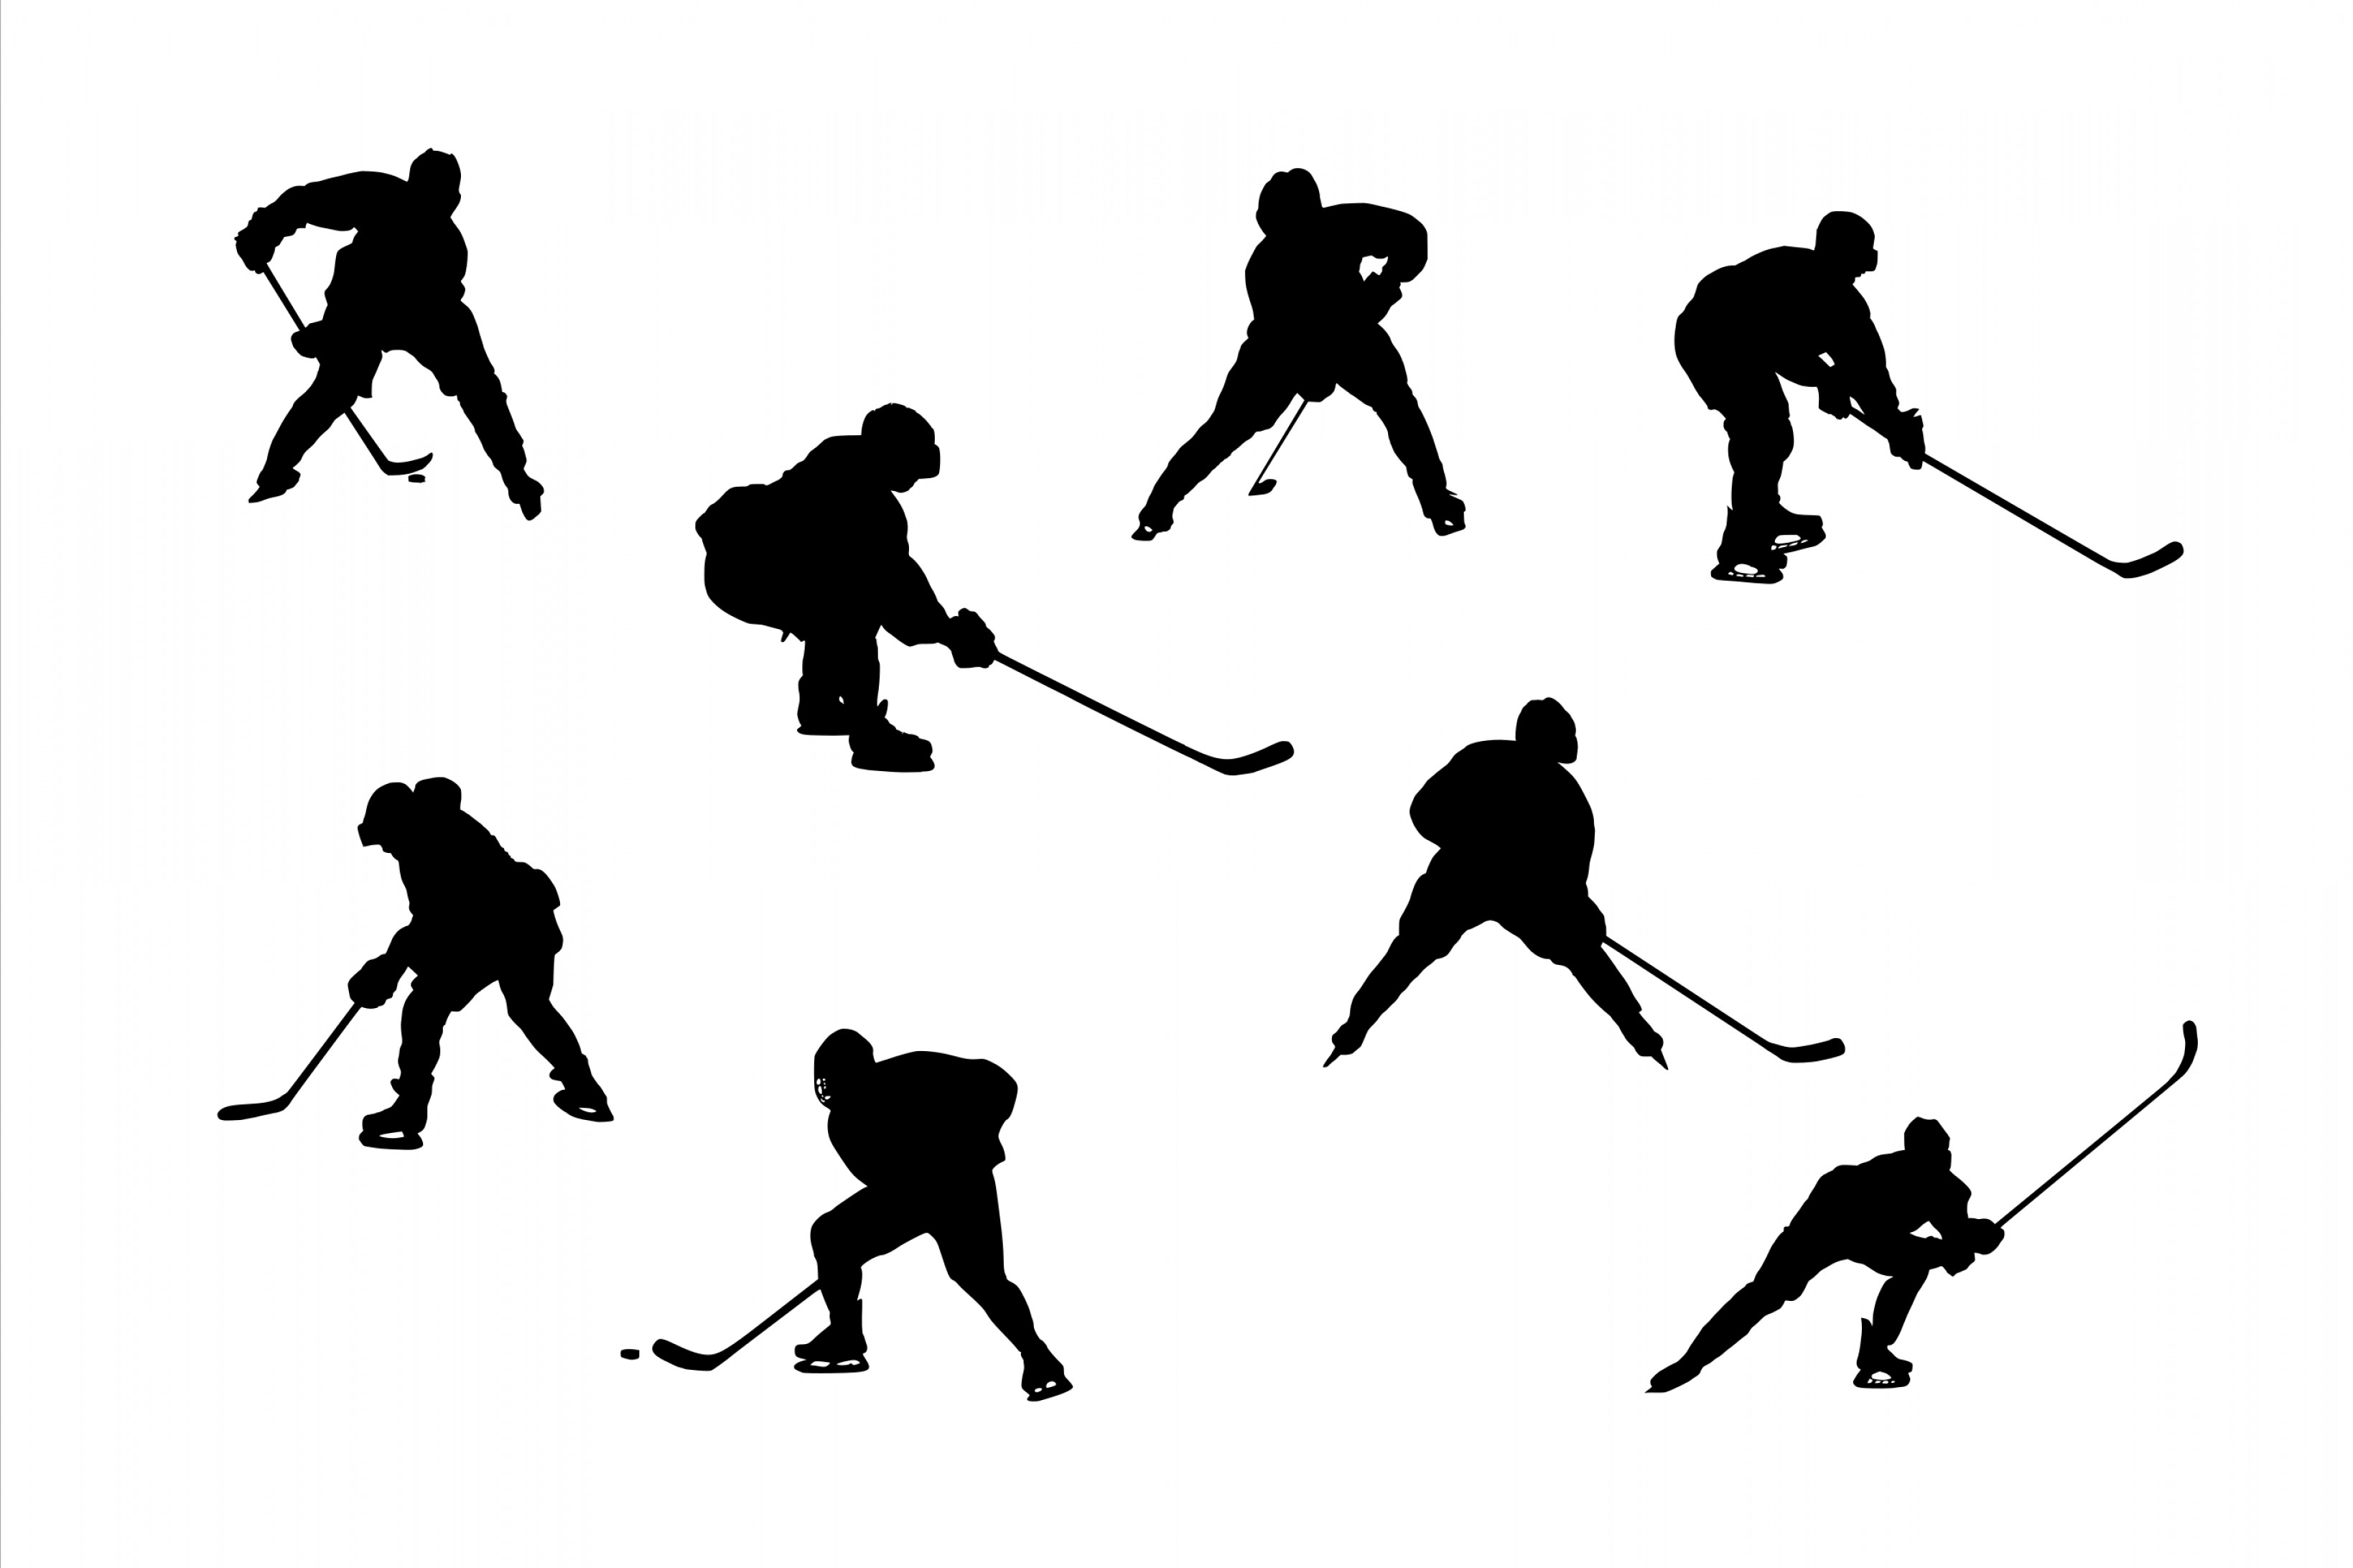 Transparent PNG Vector Skier: Hockey Player Silhouette Png Transparent